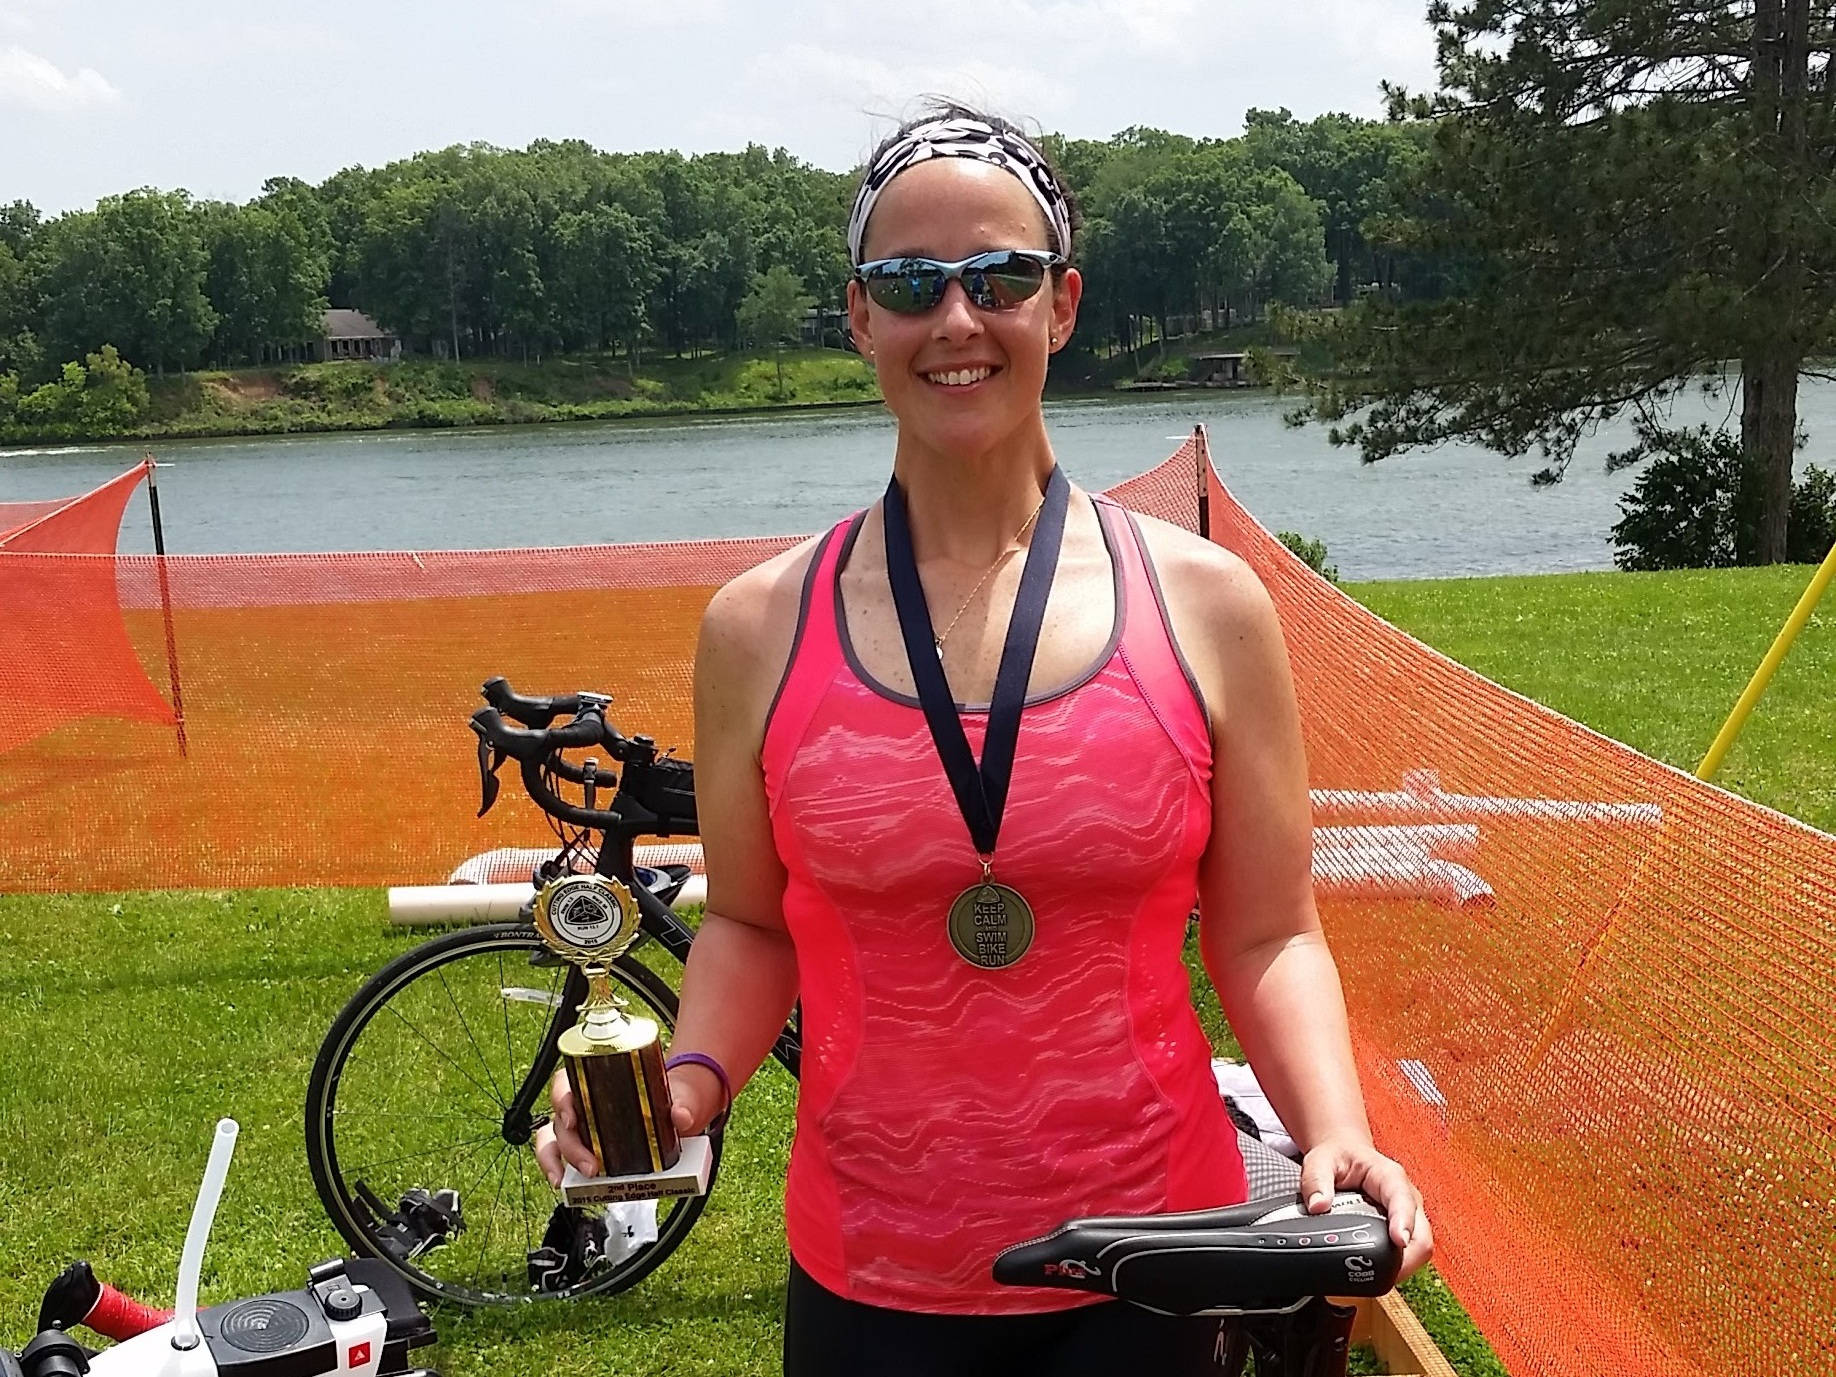 As an accomplished long distance runner and running coach, Sarah Moss uses her active lifestyle to connect physical and mental health by sharing her personal victories on and off the race course, and encouraging fellow runners to find inspiration and hope regardless of challenges.  One of the qualities that makes Sarah so inspirational is her willingness to be open about the things she has gone through. Despite the many accomplishments she's earned, she is no stranger to mental health challenges. During her pursuit to get in shape she lost 60+ pounds, however she describes the weight loss as a physical and mental challenge to maintain.   Team Thrive